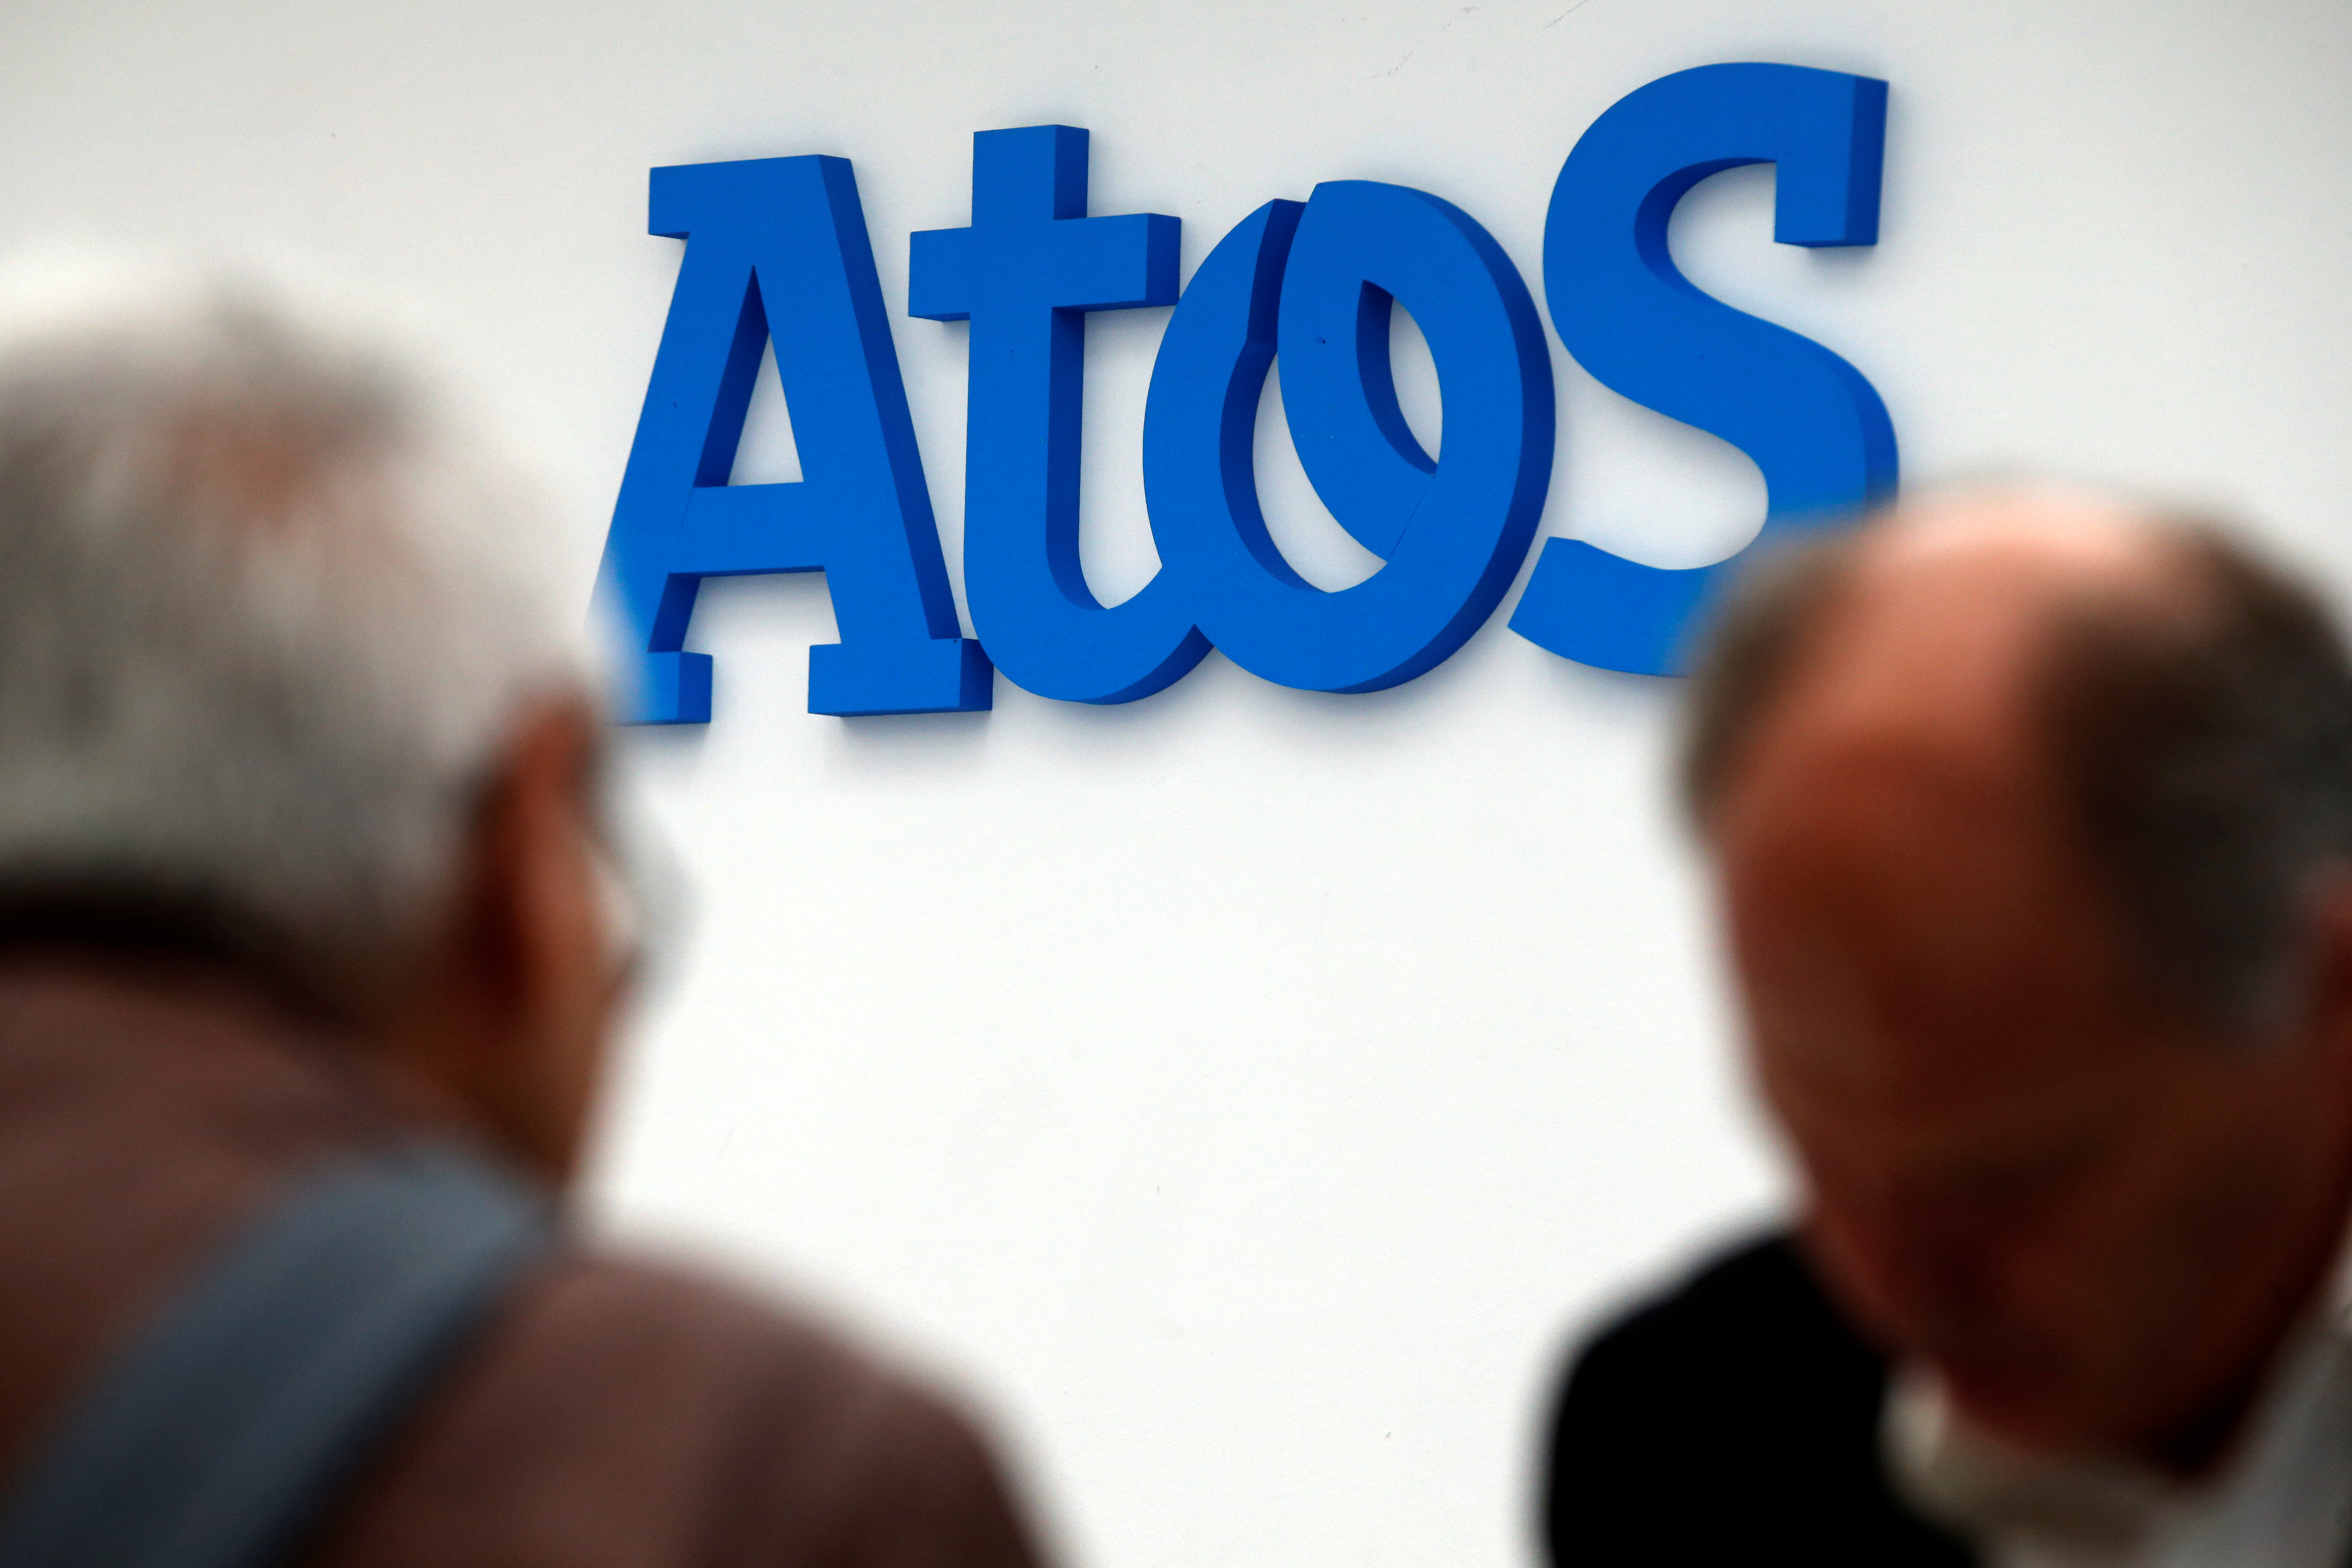 People walk in front of the Atos company's logo in Paris, France, April 12, 2016. REUTERS/Philippe Wojazer